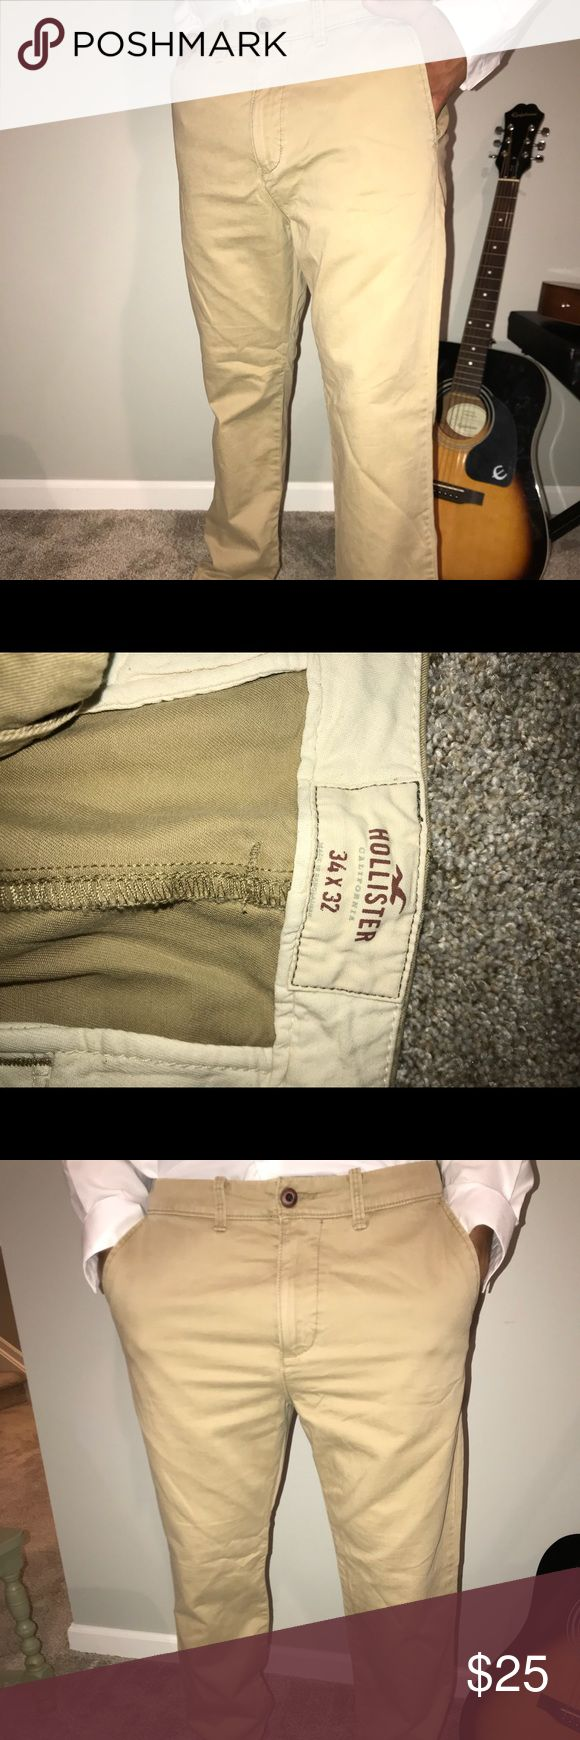 Hollister khakis Worn once. Like NEW condition. They are too big on me, so I decided to sell them. Hollister Pants Trousers